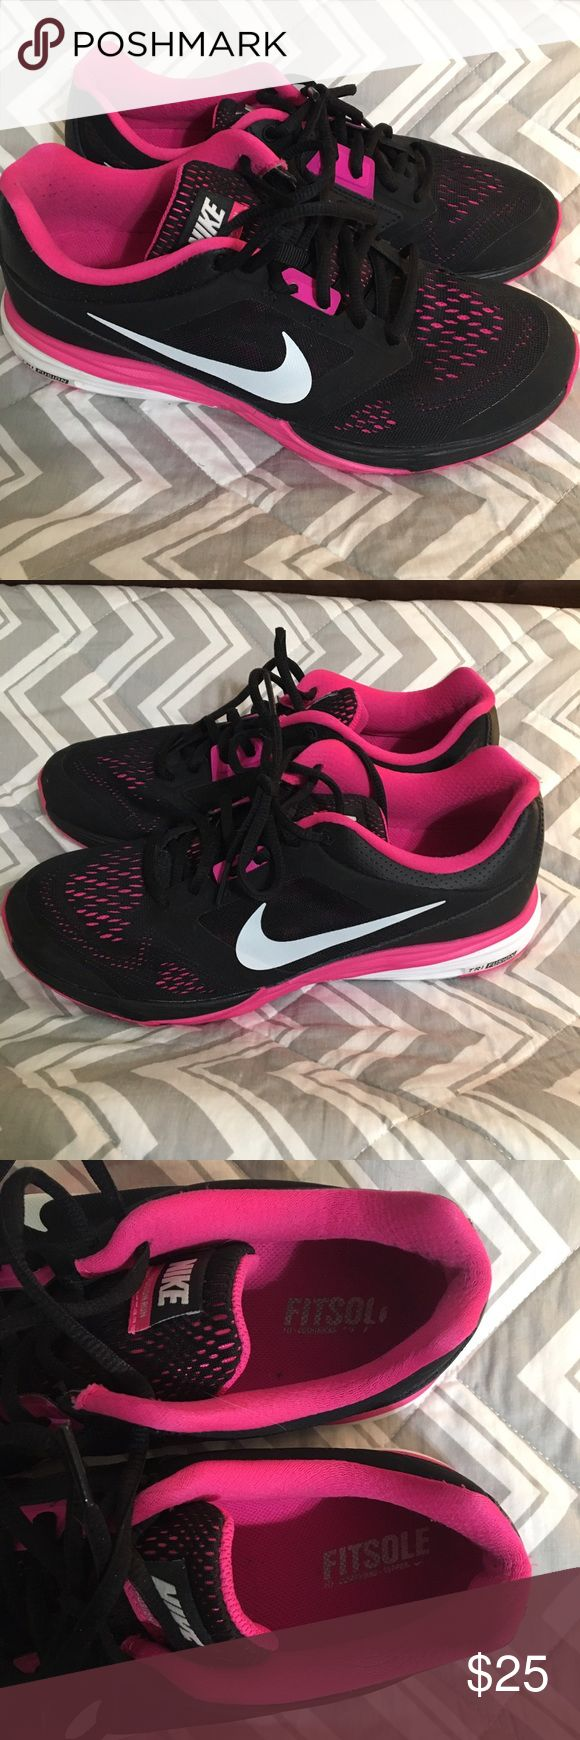 Women's Nike Tri Fusion Run Shoes 8.5 Amazing condition!  Size 8.5. Tri fusion runner by Nike.  Barely worn. Breathable mesh shoe. Super comfy!  Make an offer! Nike Shoes Sneakers